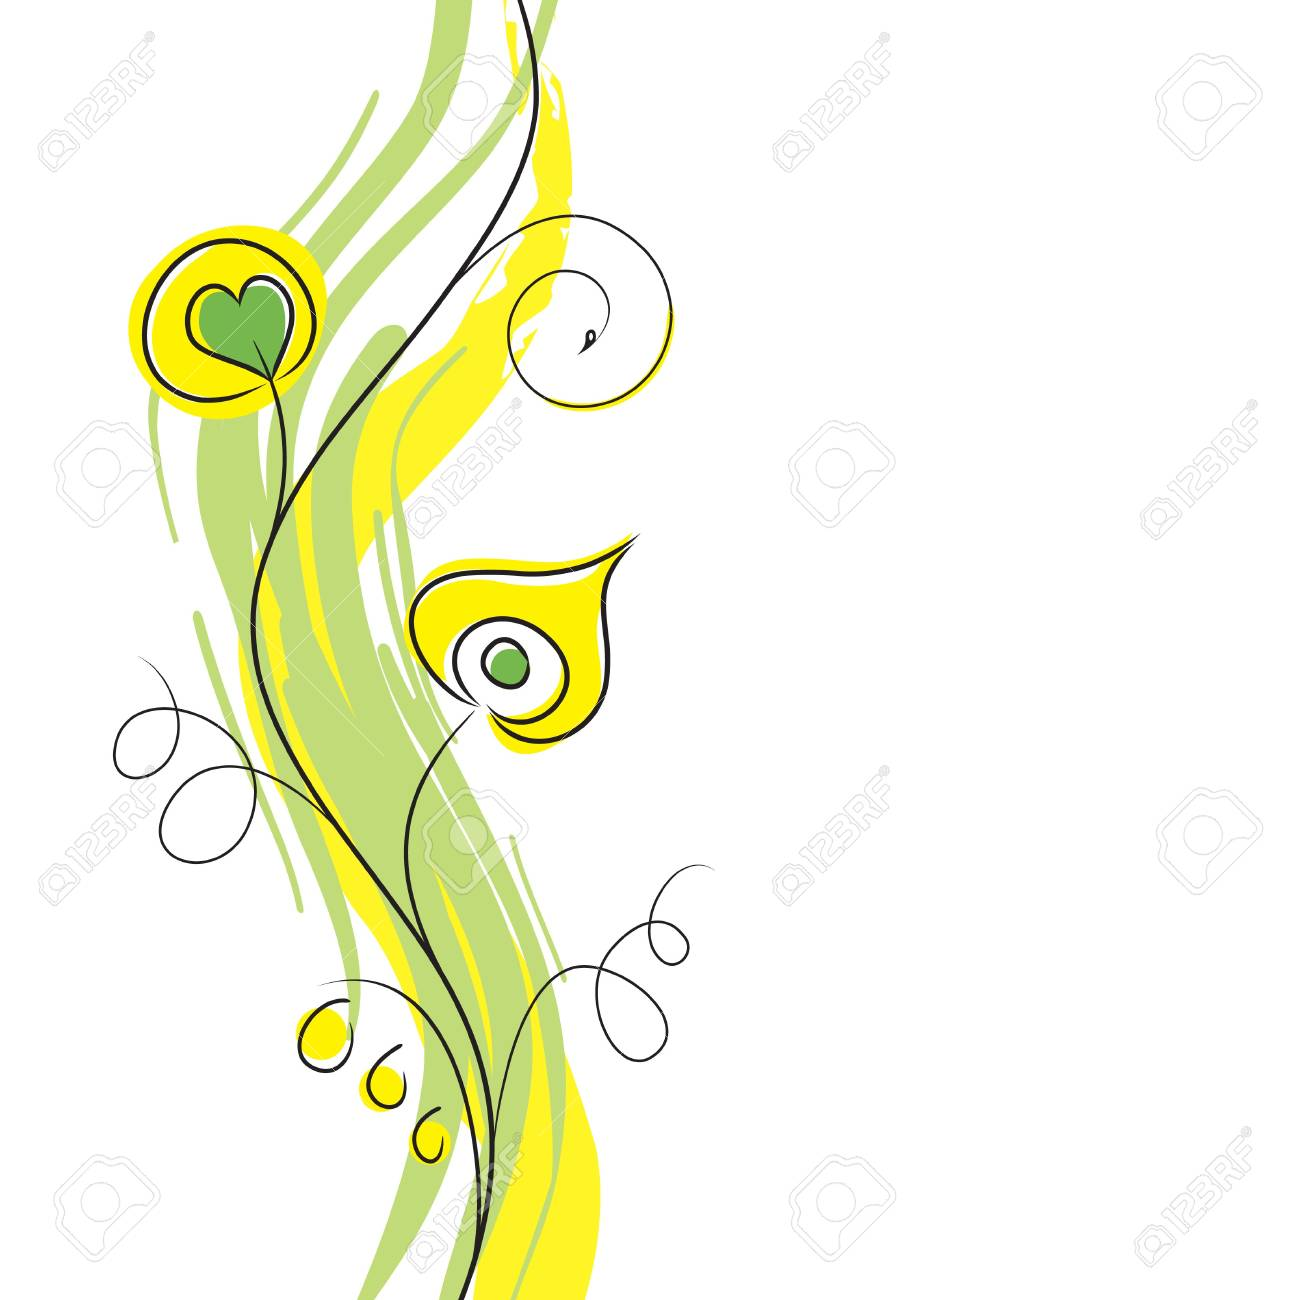 Floral Design Stock Vector - 7101727